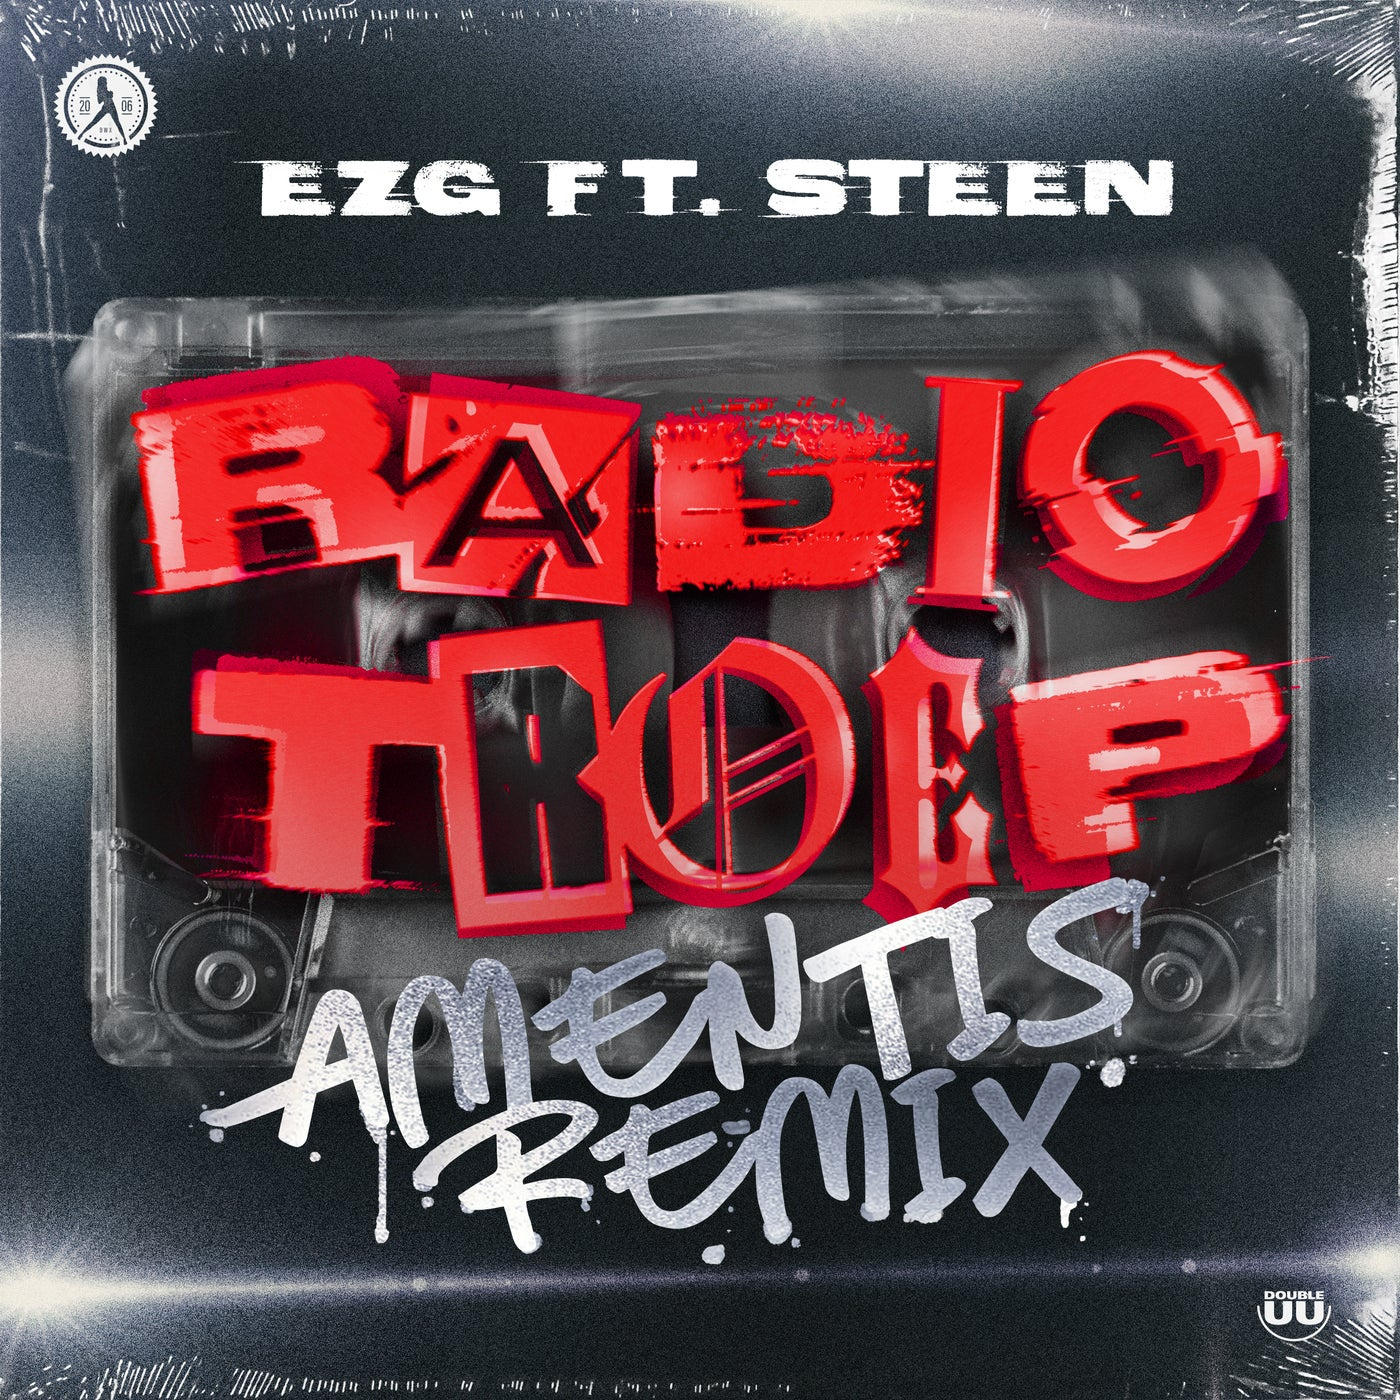 Radio Troep (Amentis Remix) feat. Steen (Extended Mix)